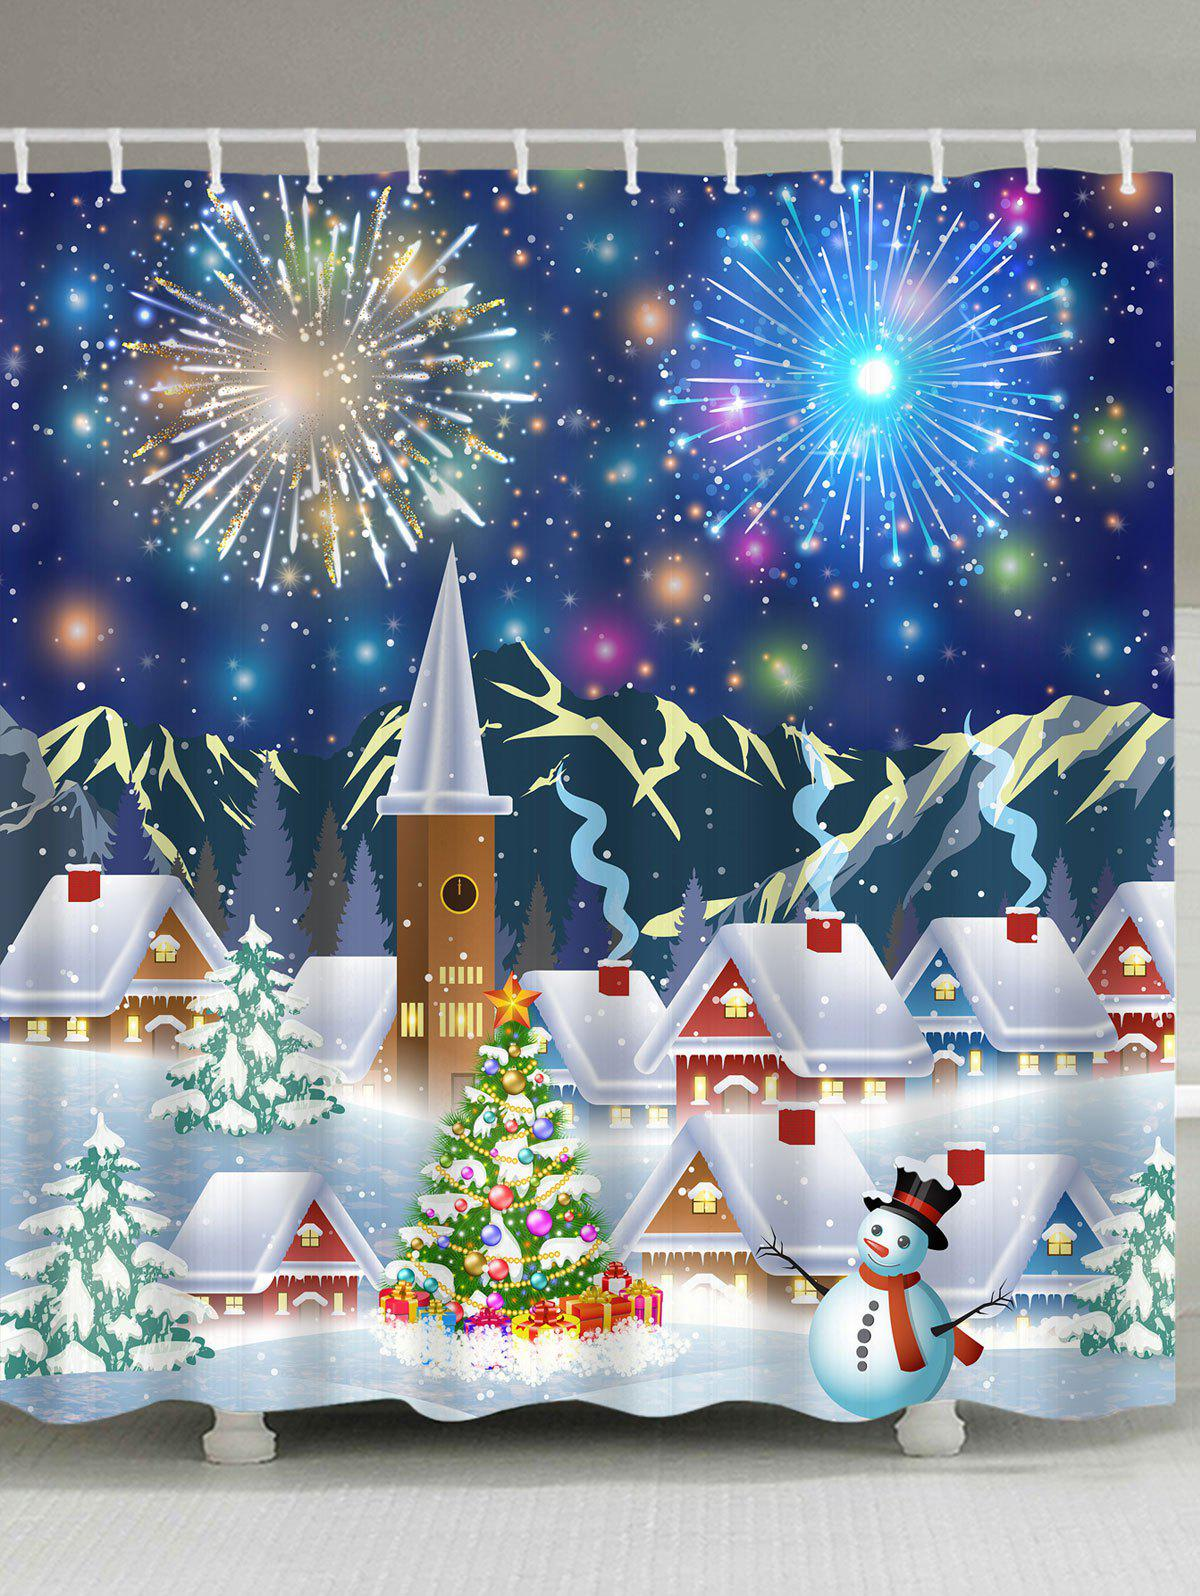 Christmas Fireworks Town Print Polyester Waterproof Shower CurtainHOME<br><br>Size: W71 INCH * L79 INCH; Color: COLORMIX; Products Type: Shower Curtains; Materials: Polyester; Style: Festival; Number of Hook Holes: W59 inch*L71 inch: 10; W71 inch*L71 inch: 12; W71 inch*L79 inch: 12; Package Contents: 1 x Shower Curtain 1 x Hooks (Set);